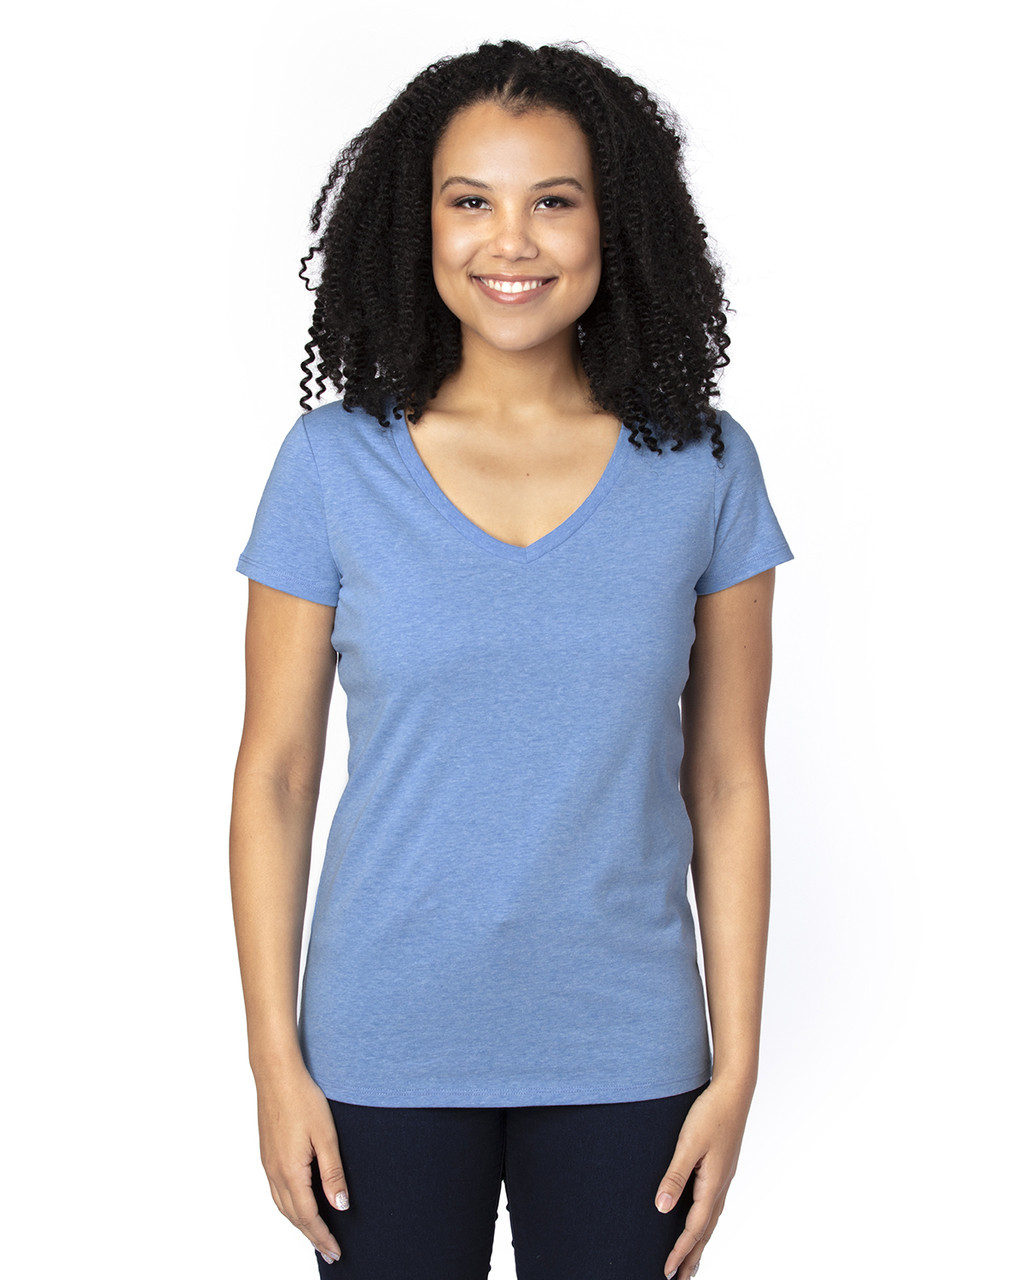 Royal Heather - 200RV Threadfast Ladies' Ultimate Short-Sleeve V-Neck T-Shirt | BlankClothing.ca